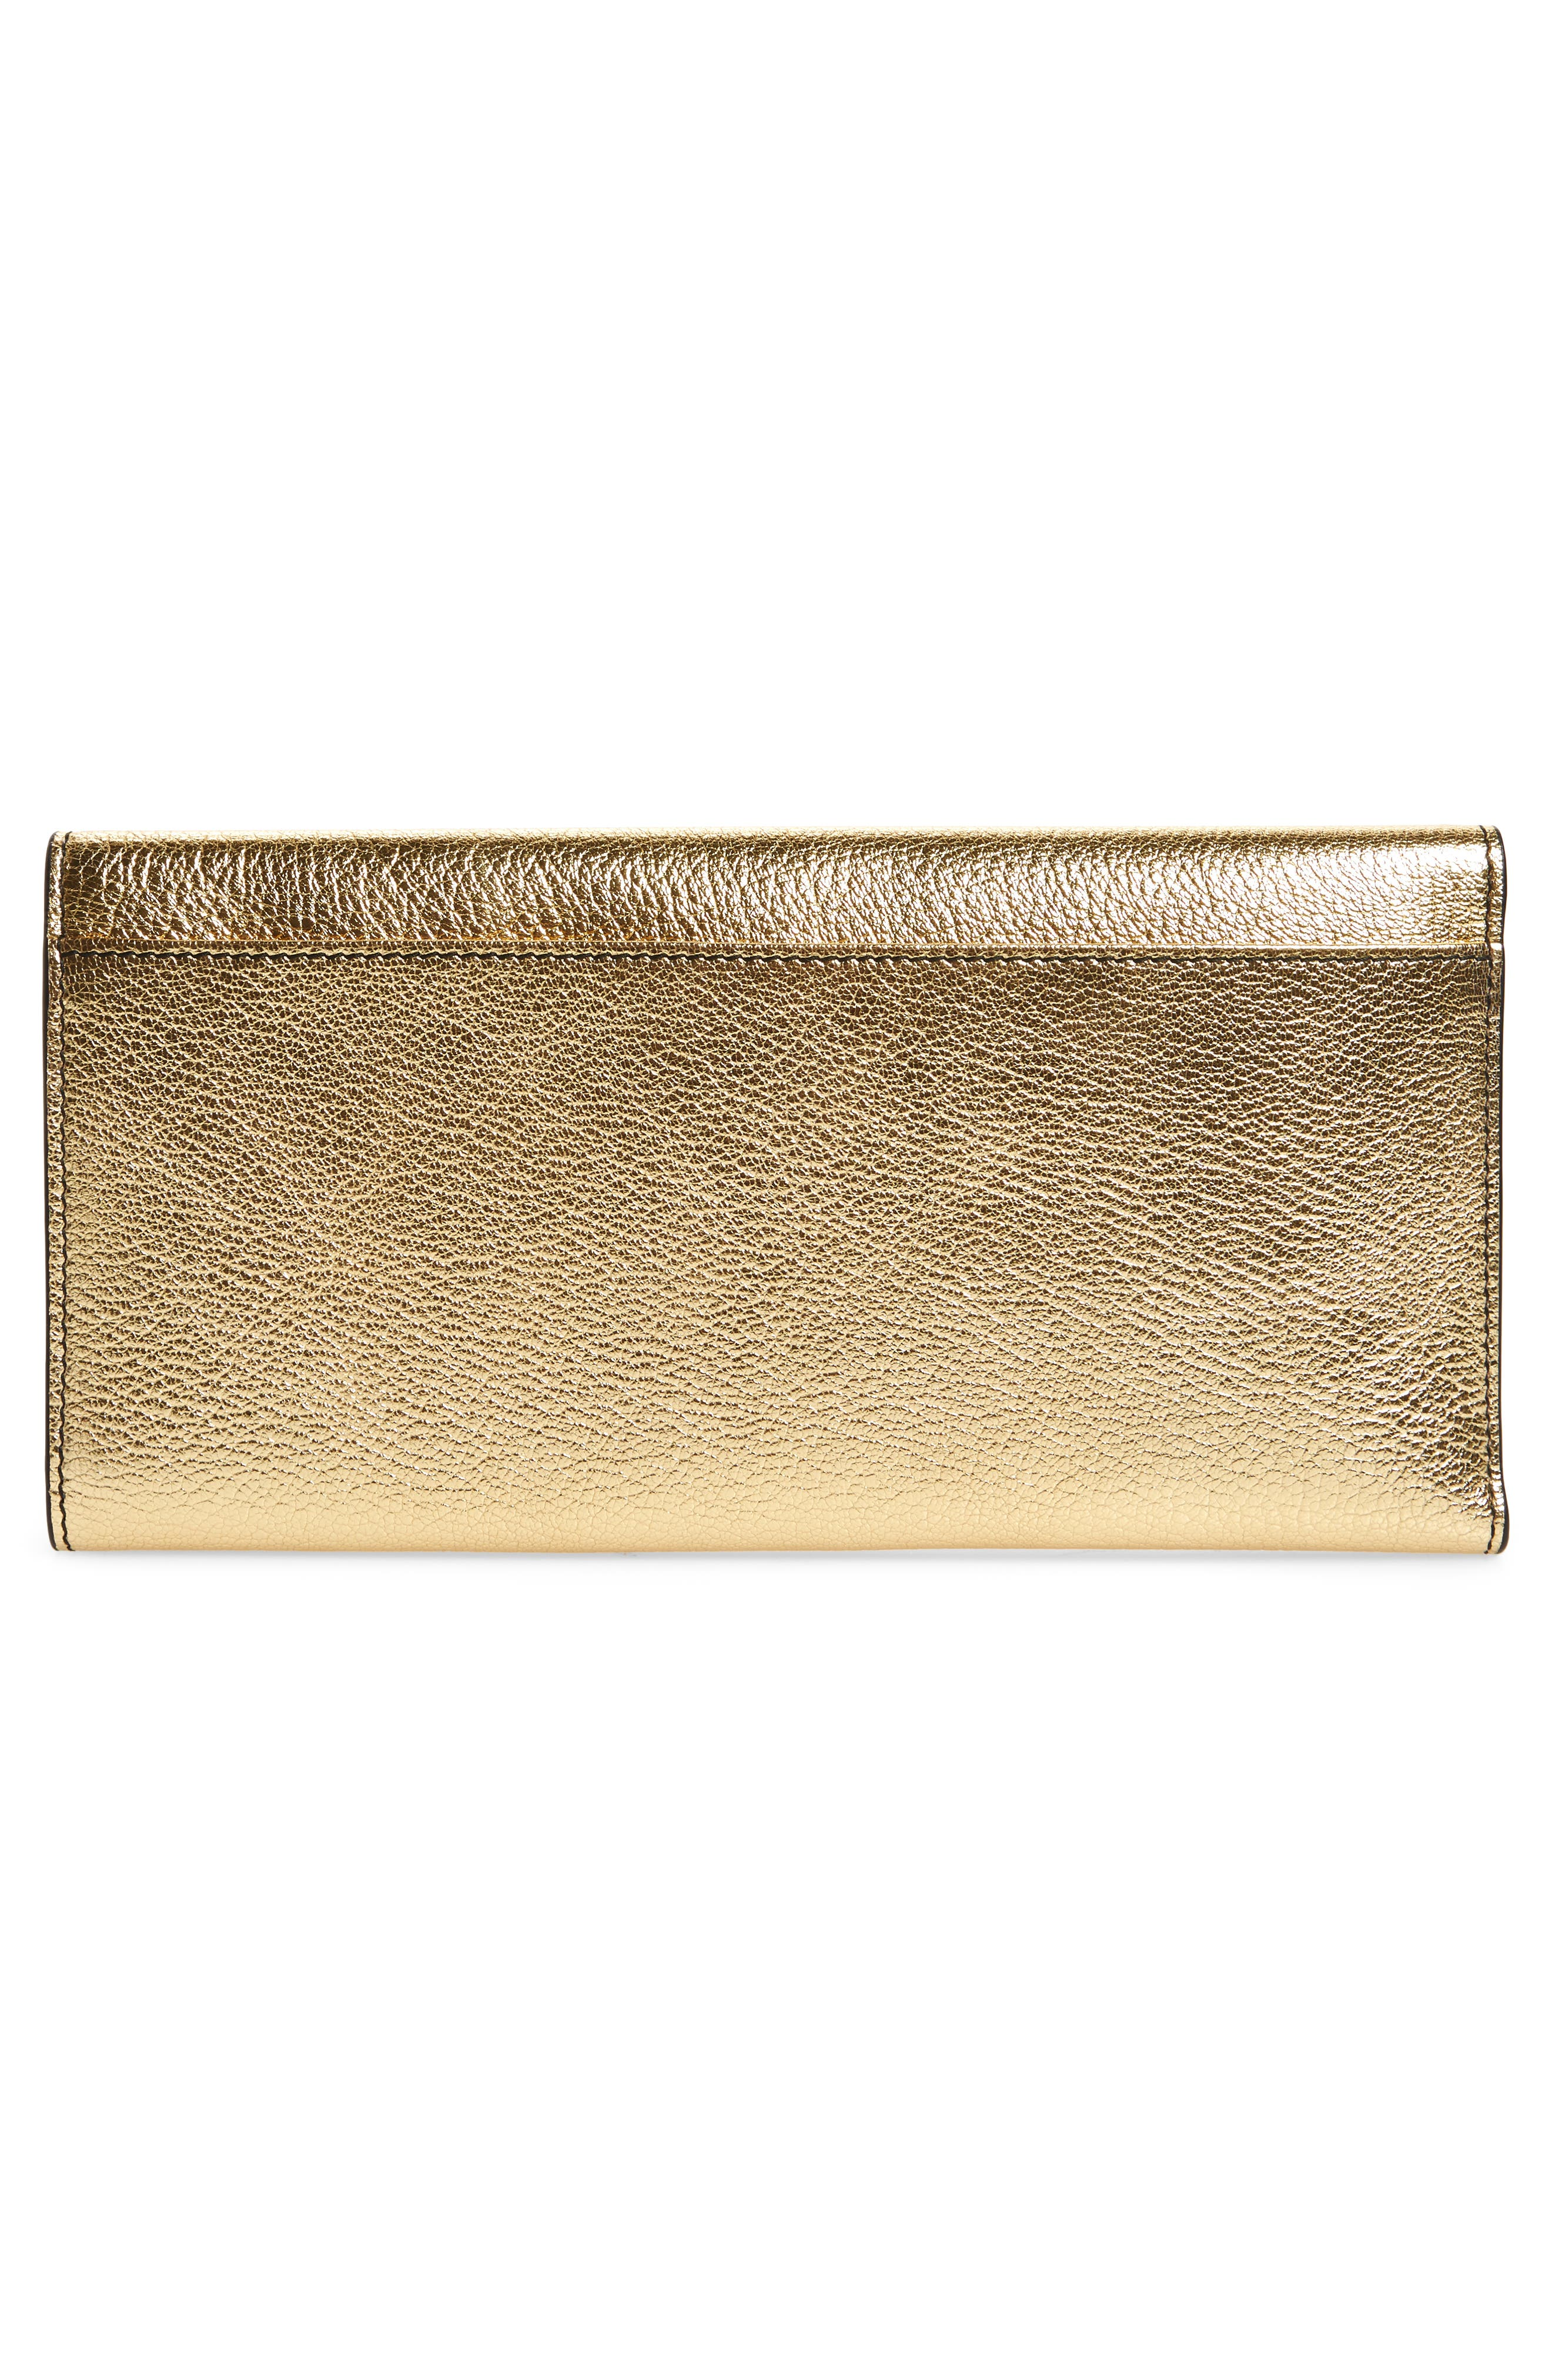 Leather Travel Wallet,                             Alternate thumbnail 3, color,                             710